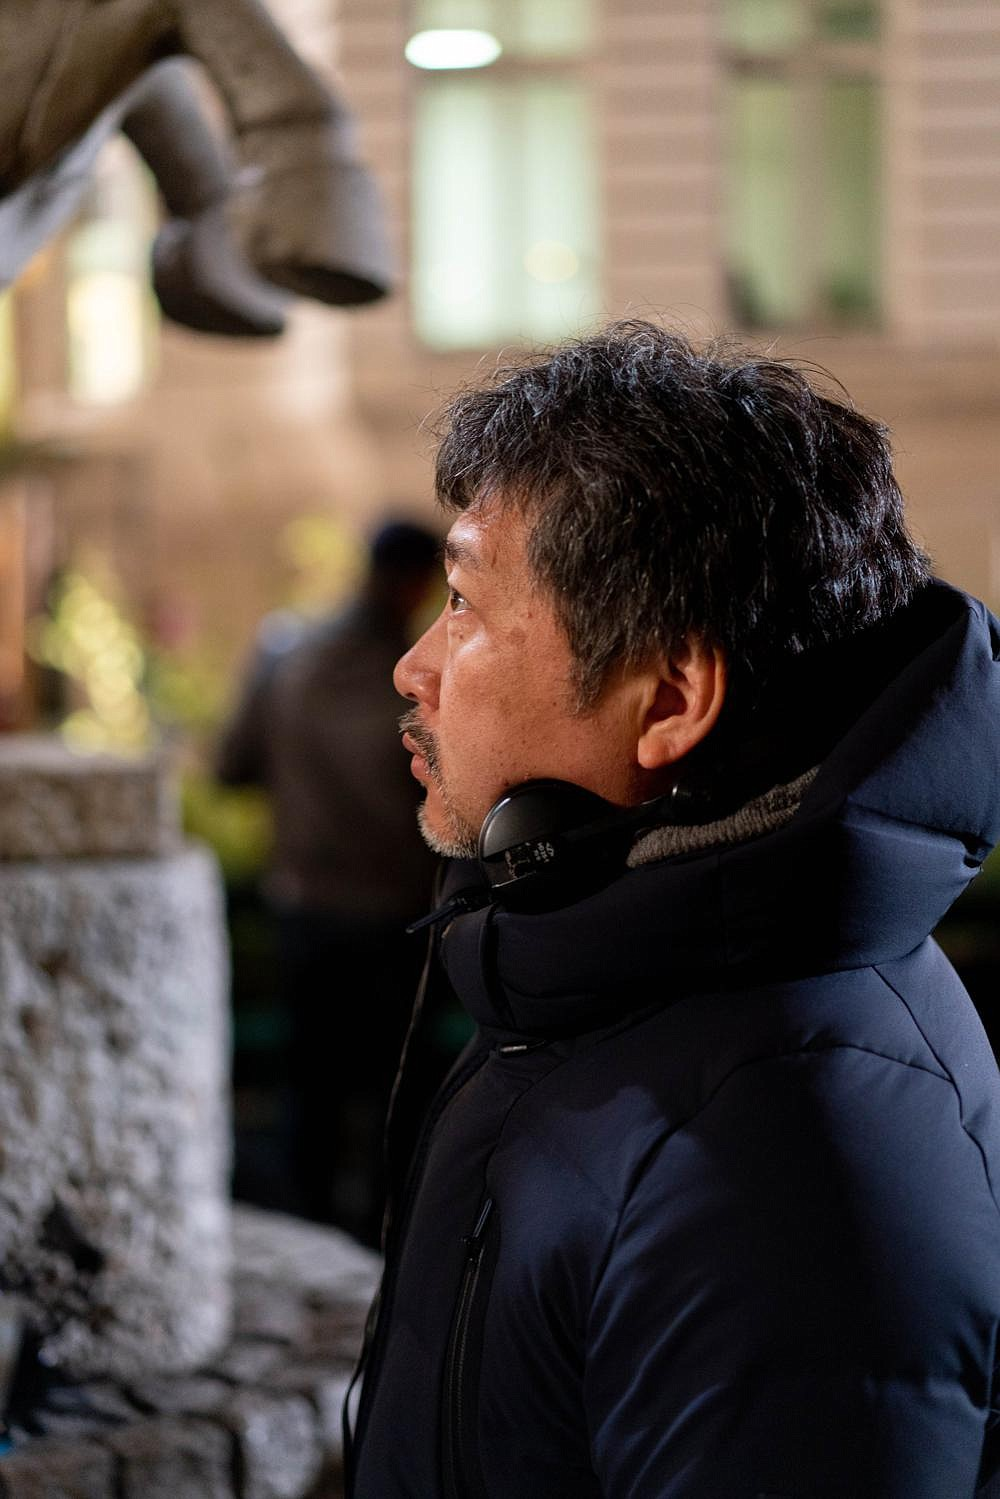 Hirokazu Koreeda shot his latest film in French, in France, with a French crew even though he doesn't speak the language himself. All he needed, he says, was a good bilingual person at his side.